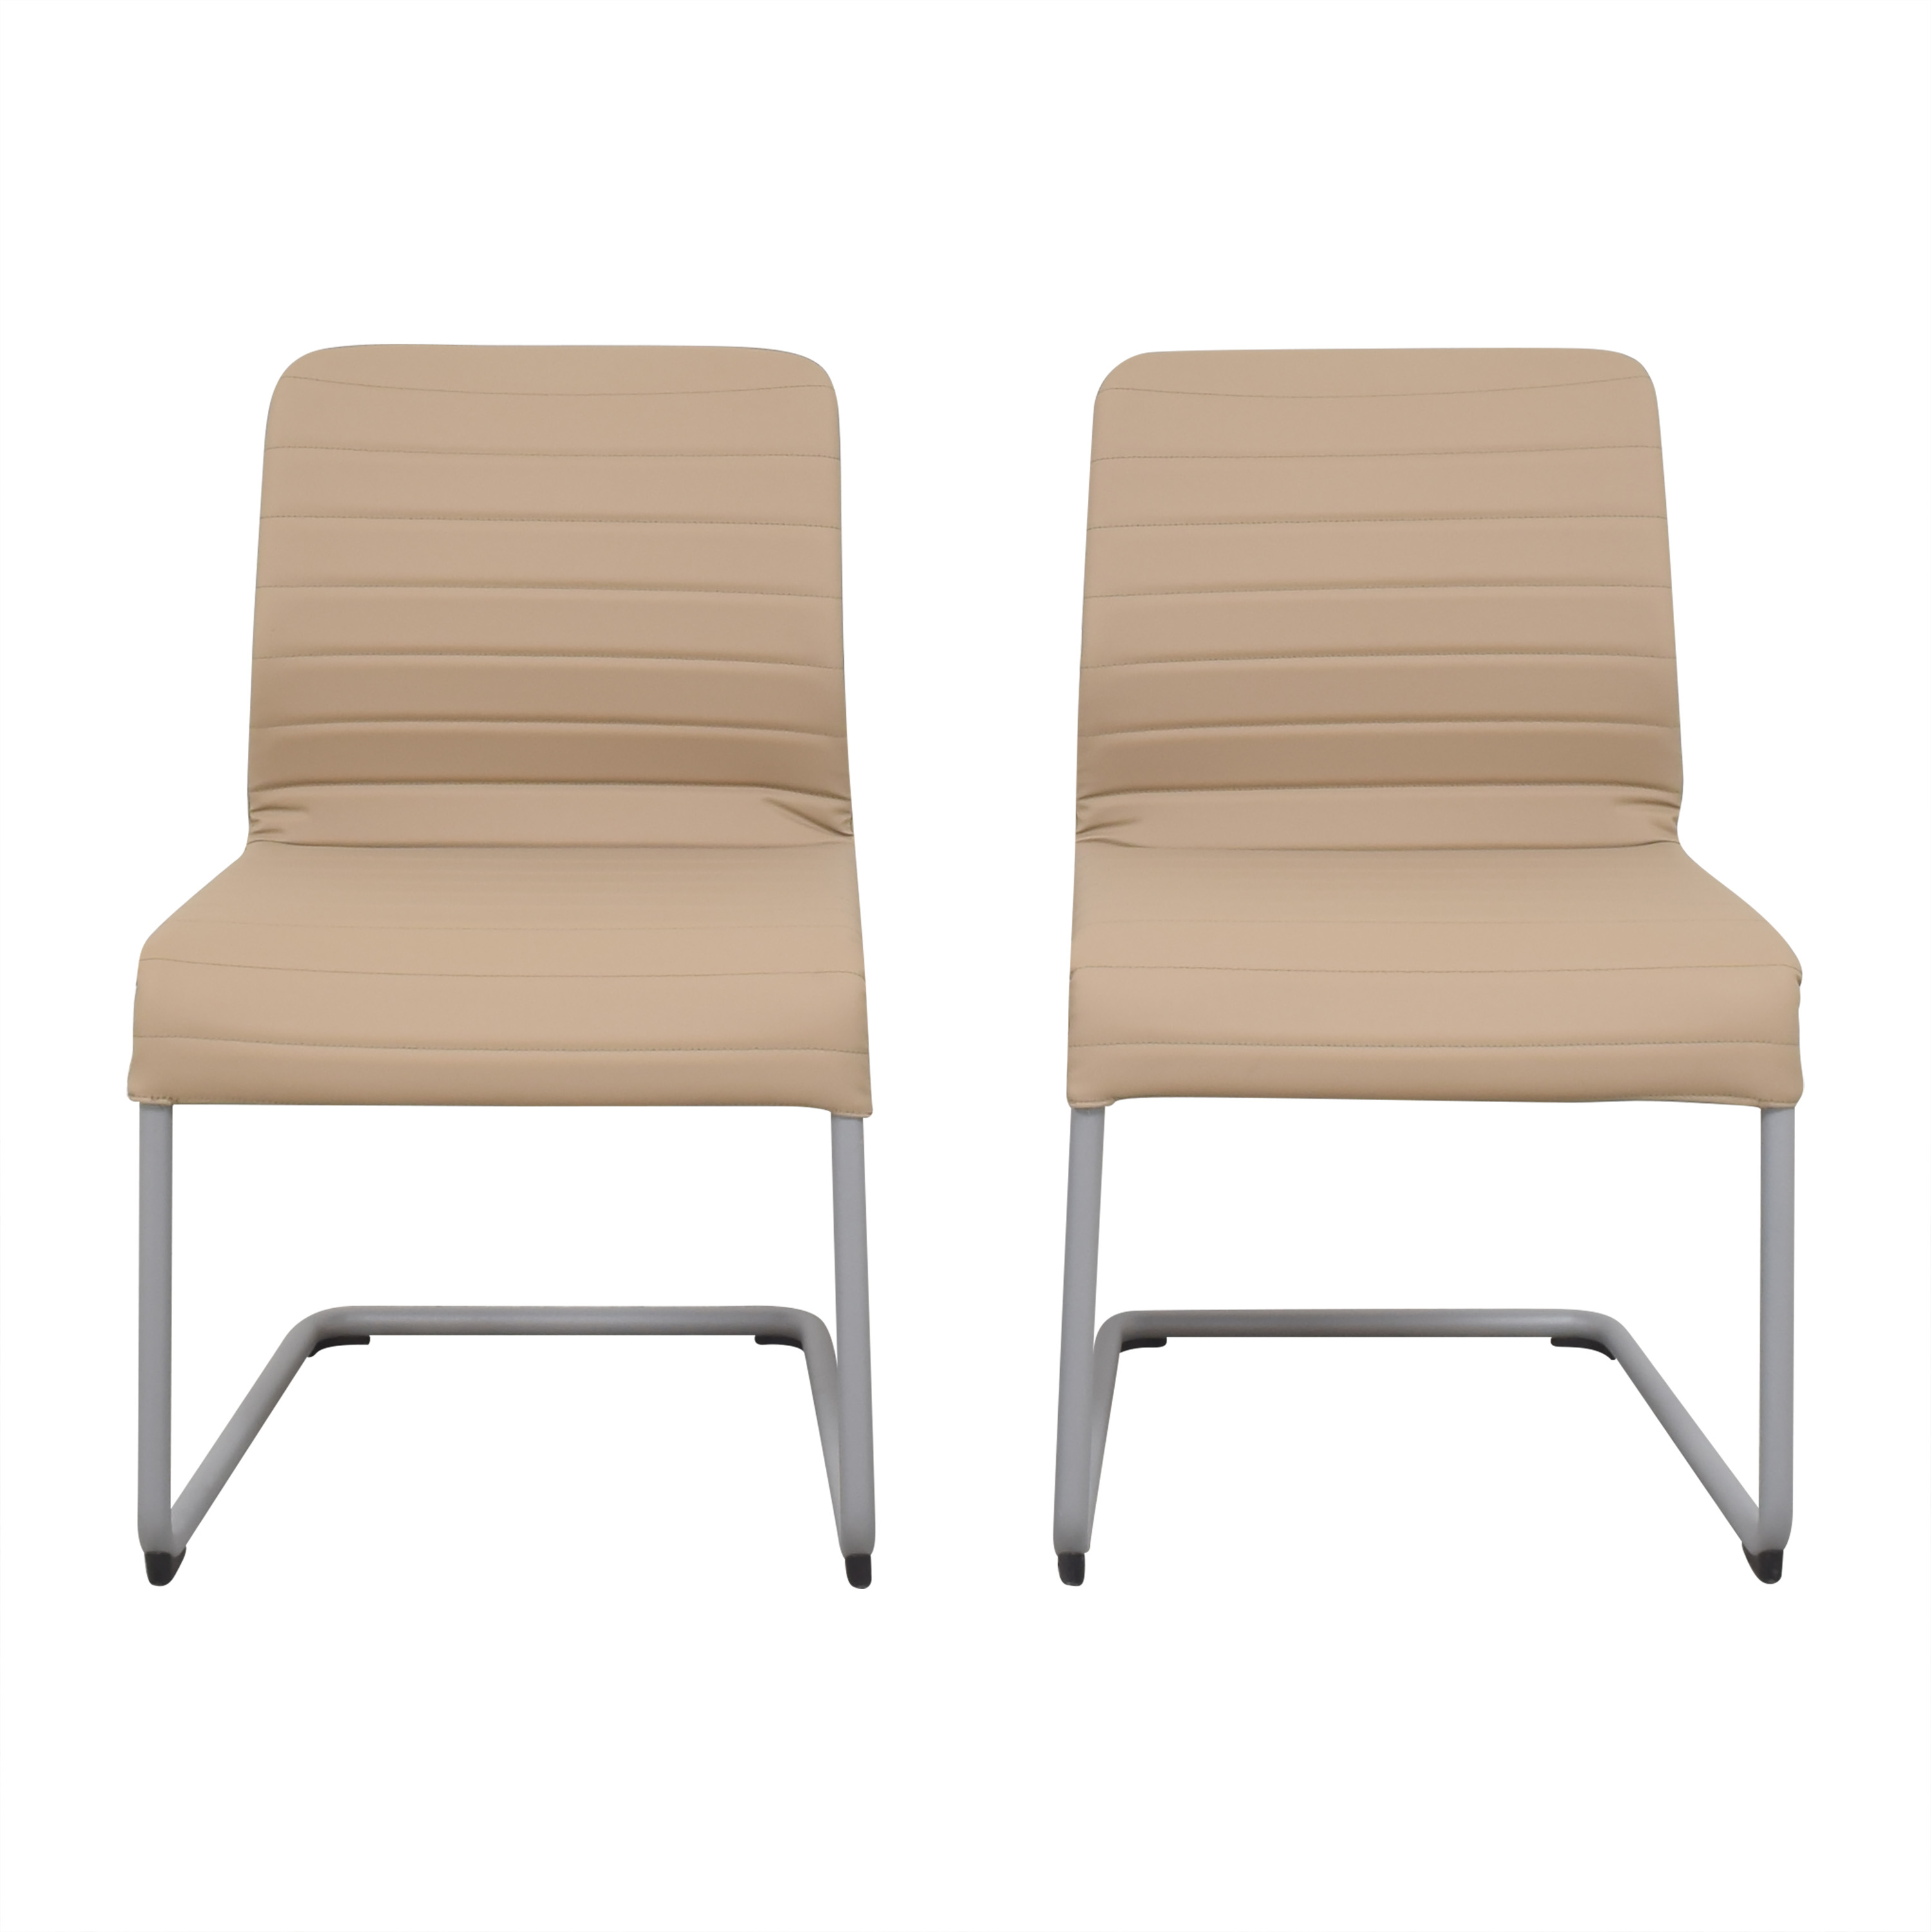 buy Global Furniture Group Lite Cantilever Frame Chairs Global Furniture Group Chairs